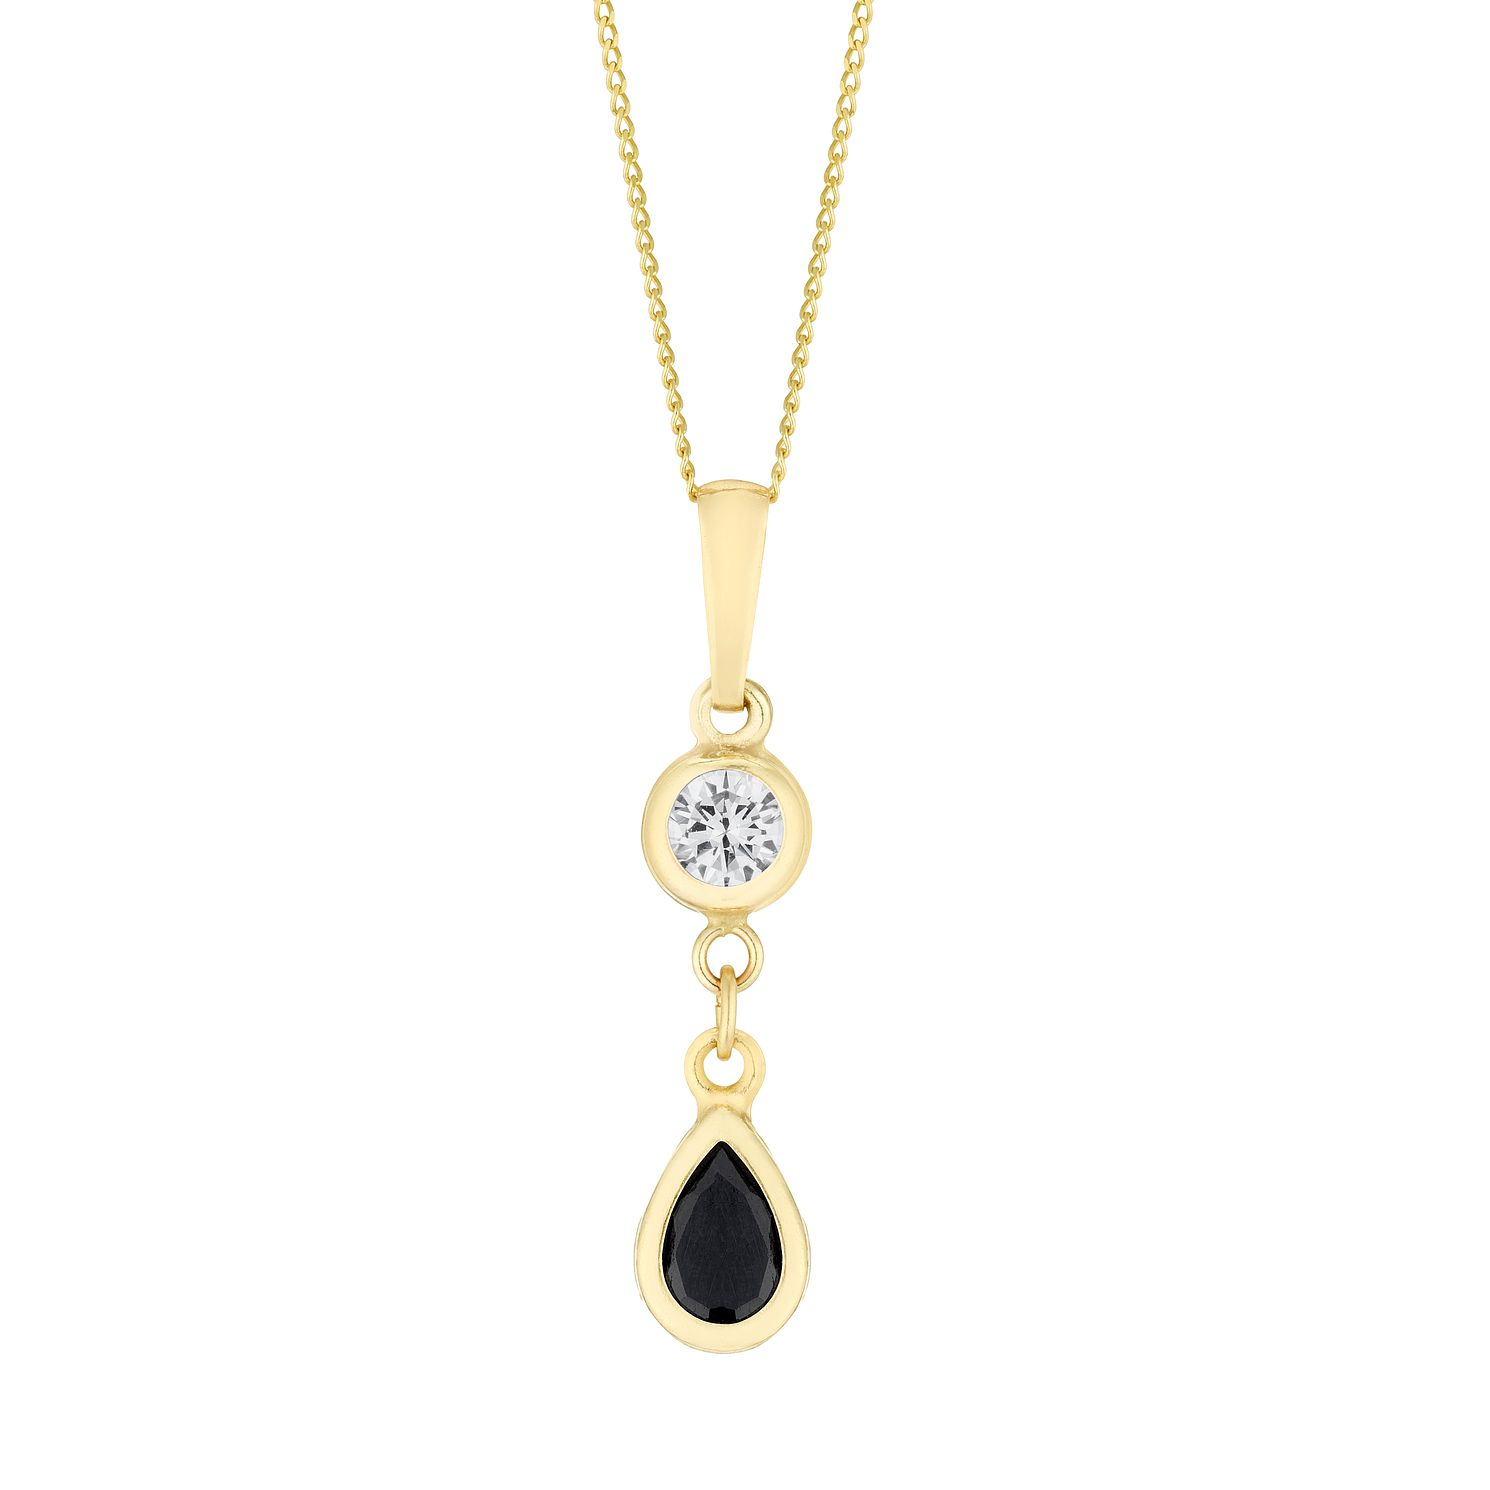 9ct Yellow Gold Sapphire & Cubic Zirconia Teardrop Pendant - Product number 3145336